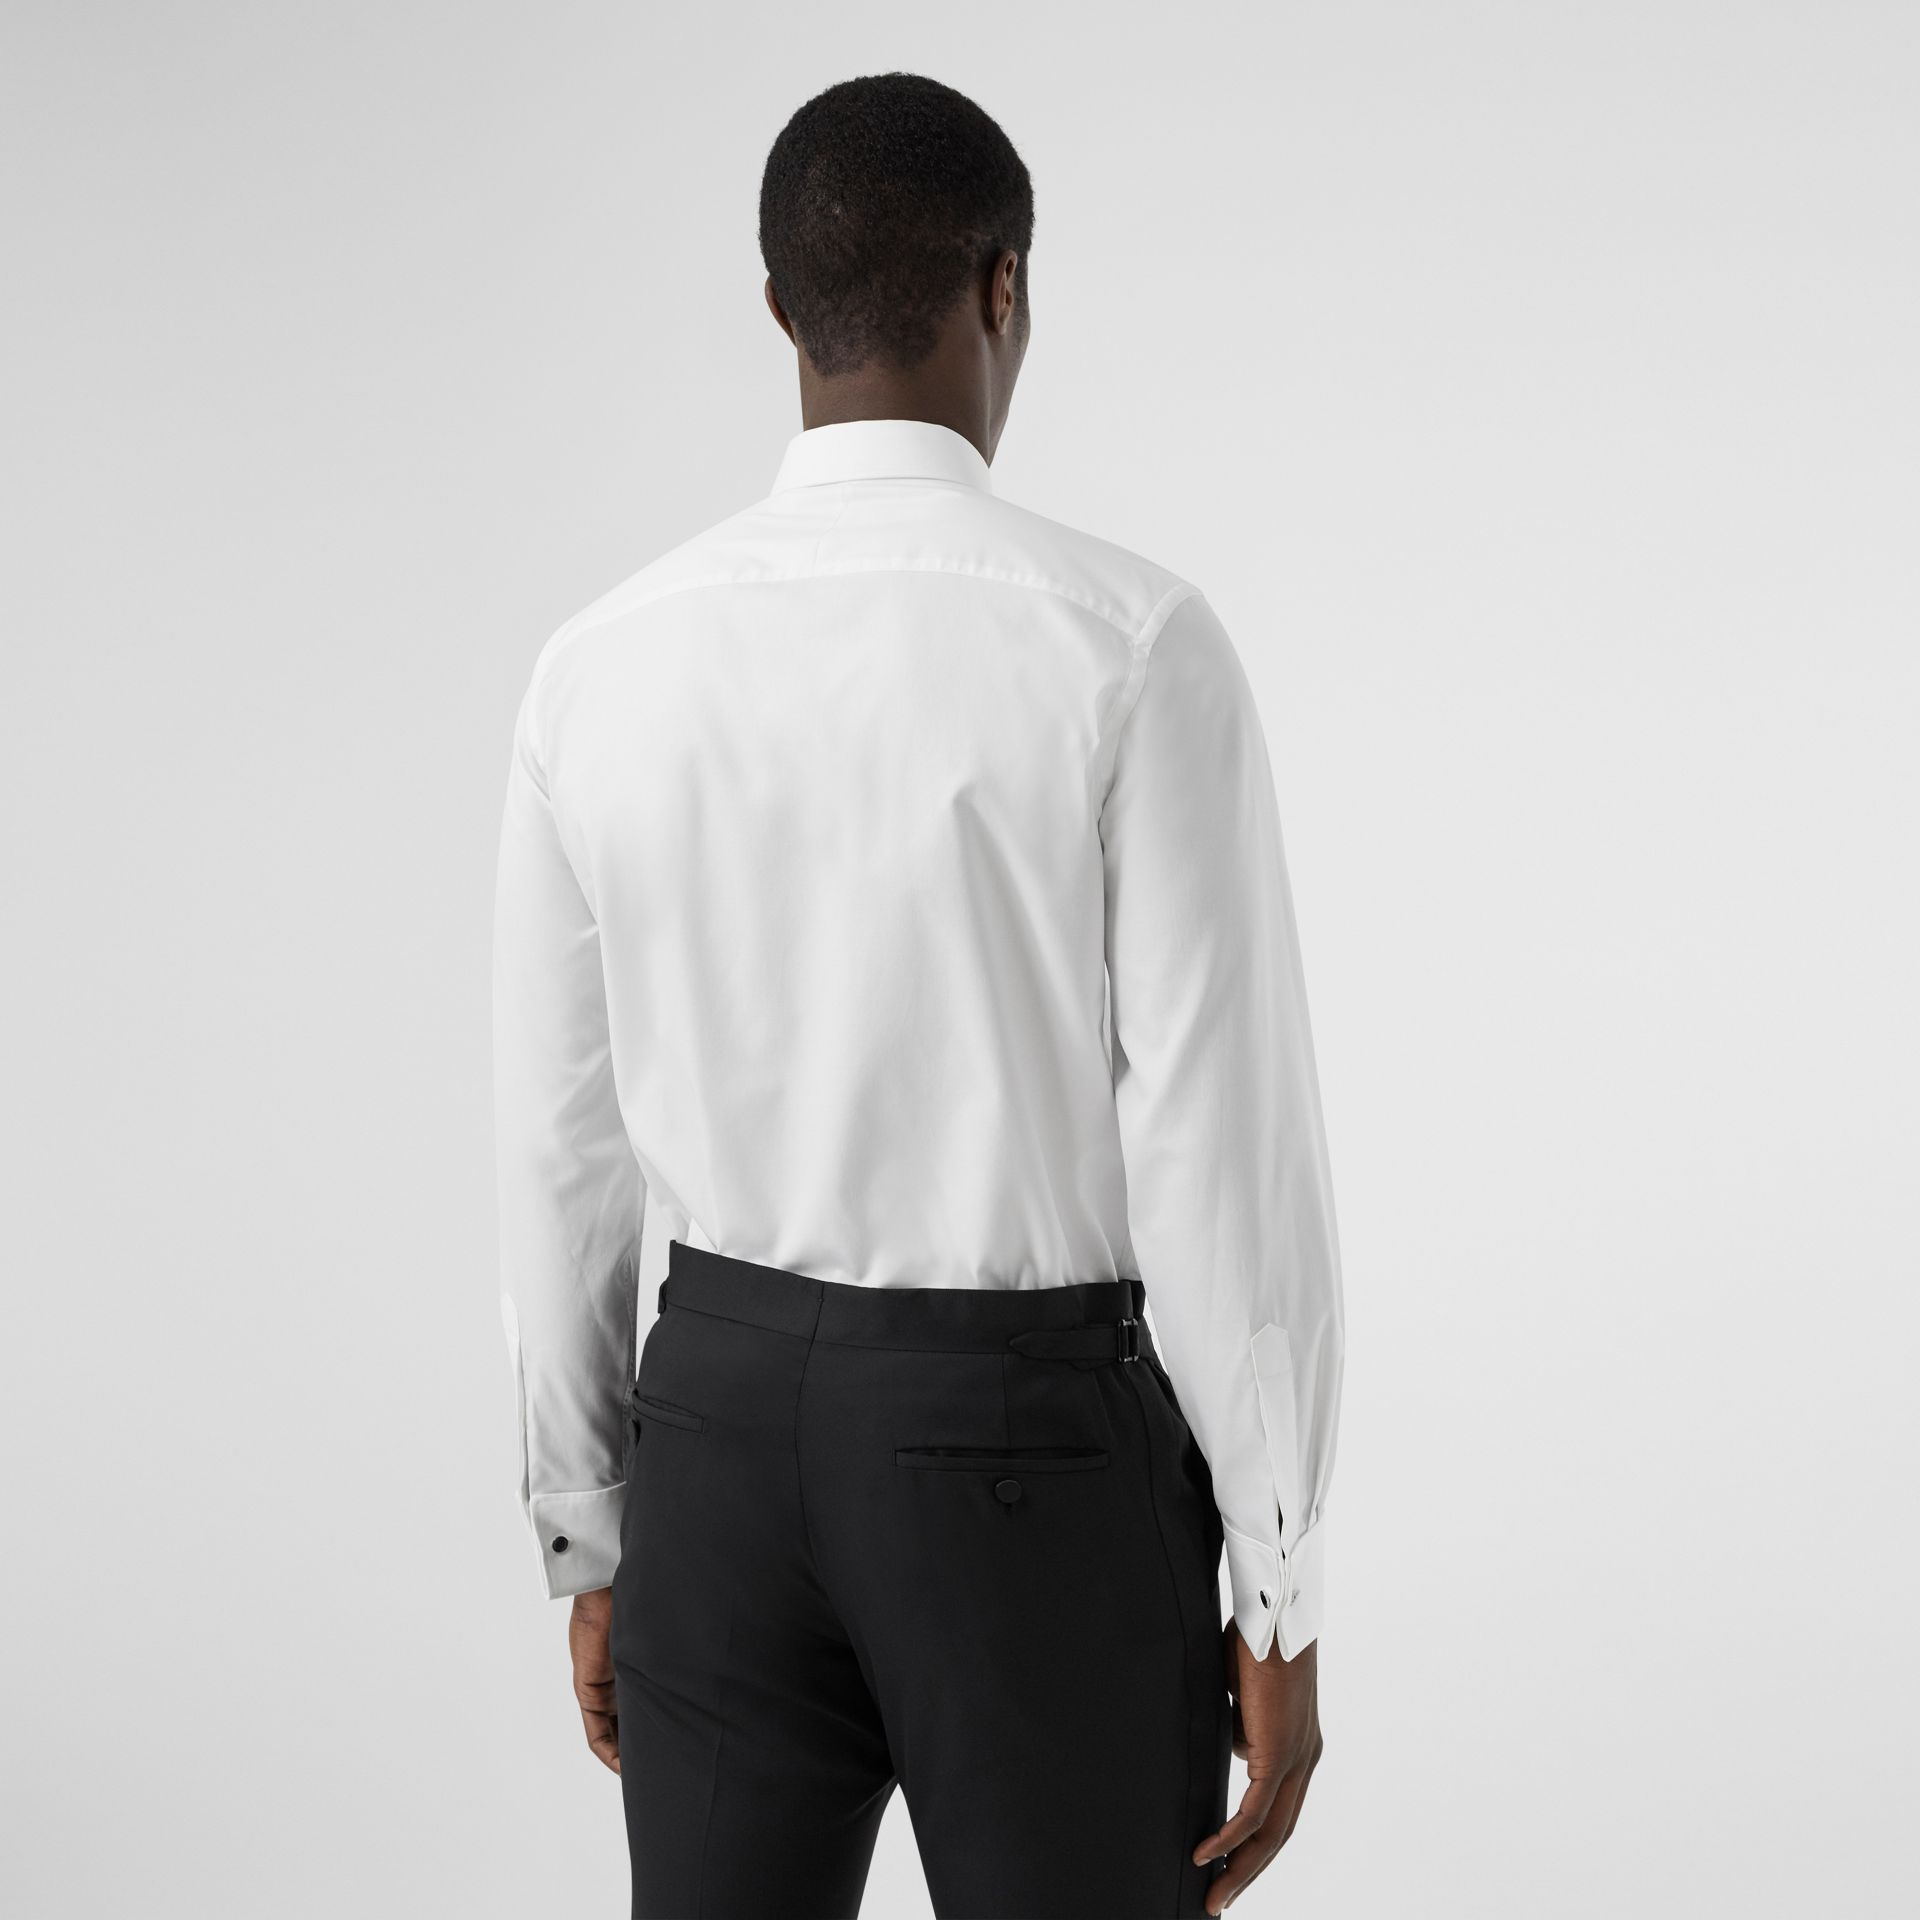 Ribbed Bib Cotton Oxford Dress Shirt in White - Men | Burberry - gallery image 2